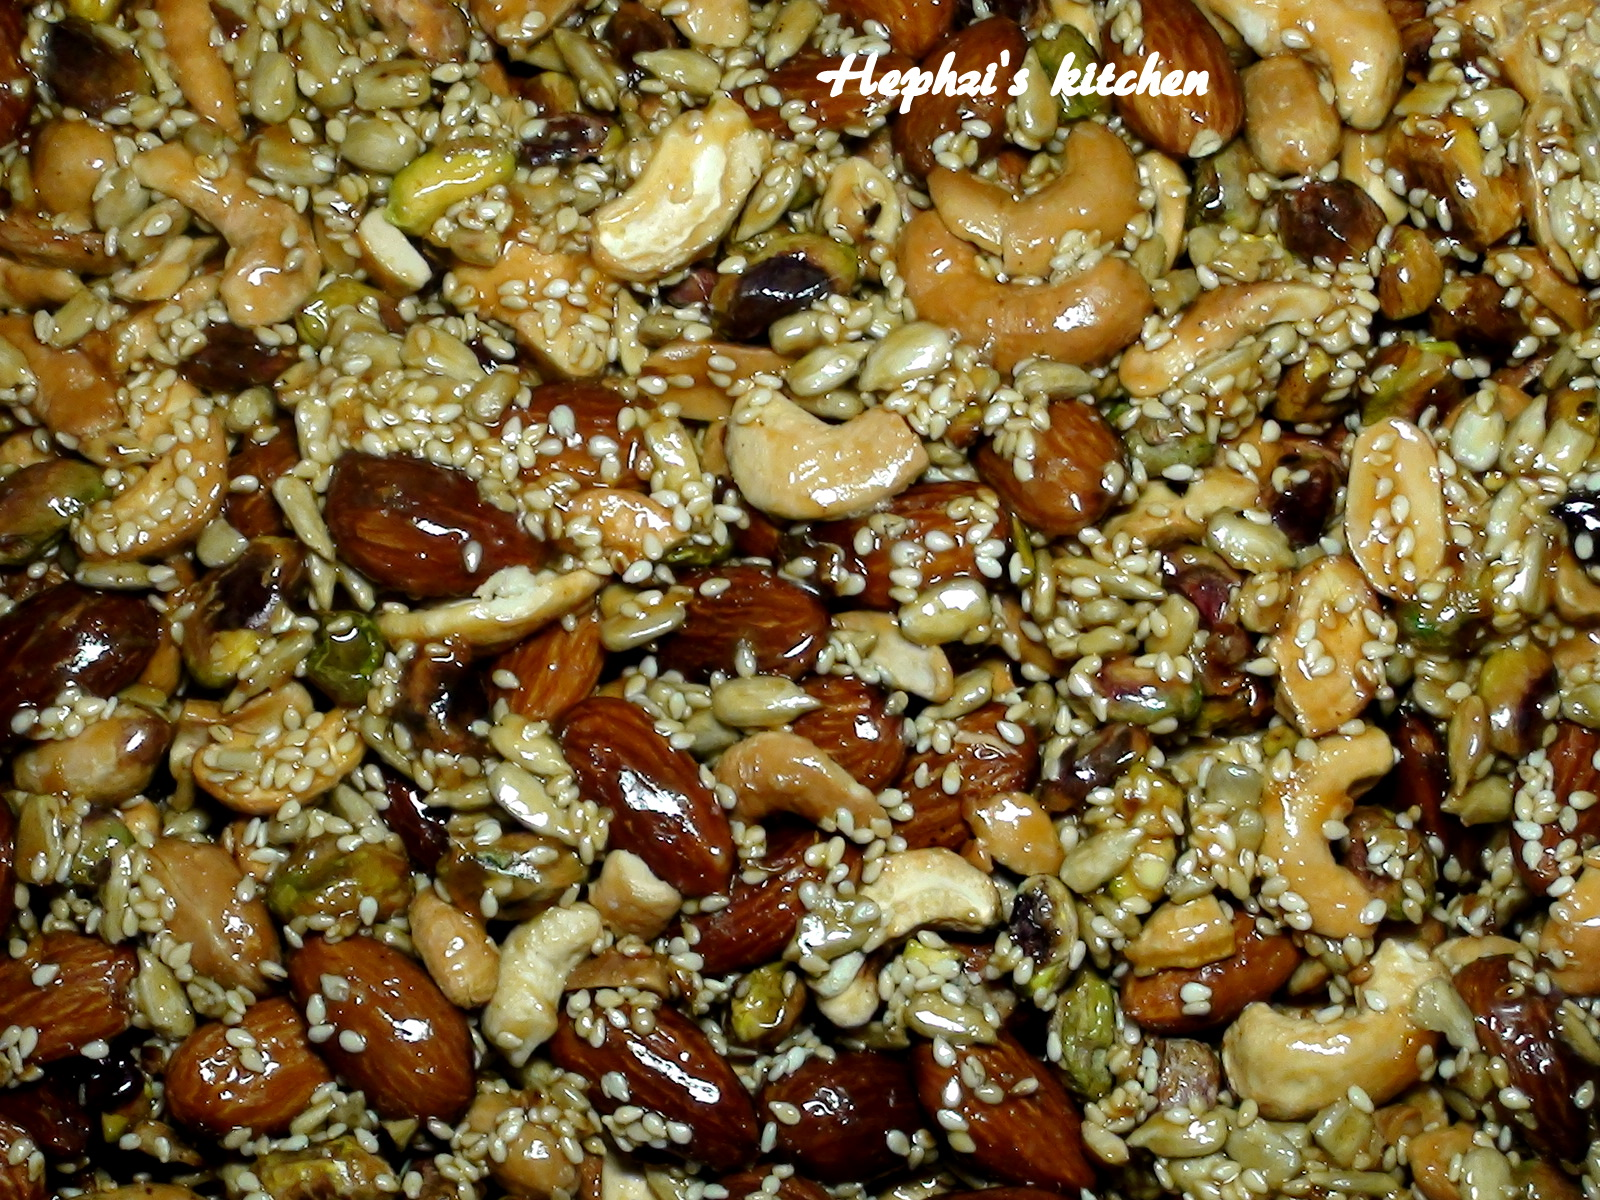 From my kitchen....: Mixed nuts Brittle - Nuts candy